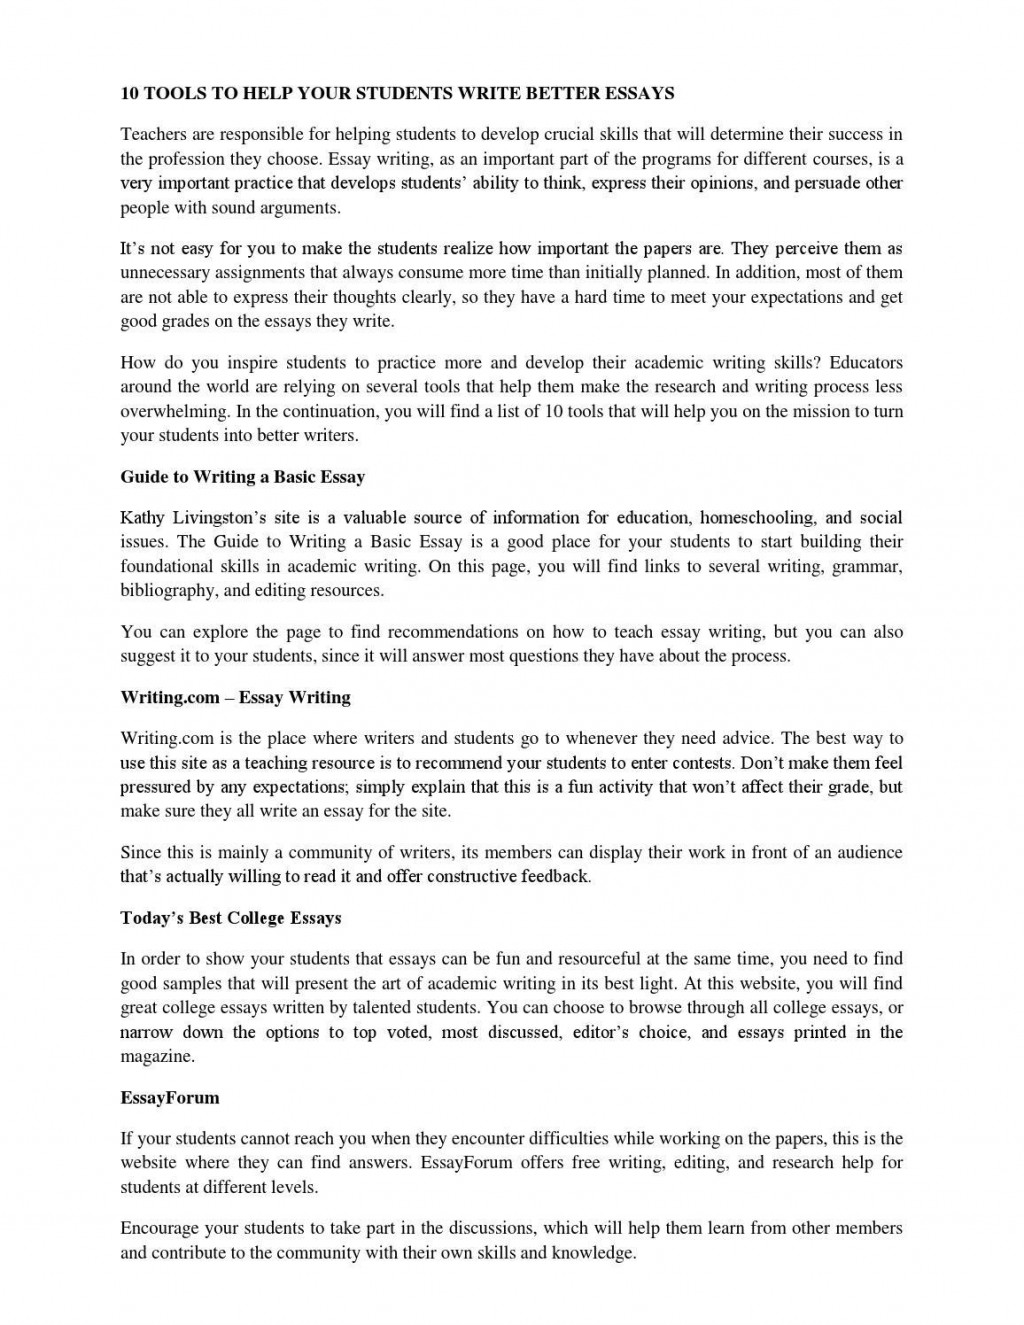 006 Research Paper Free Papers Online Essay Writing Websites Reviews For Students Editing Page Example Staggering Find Get Large